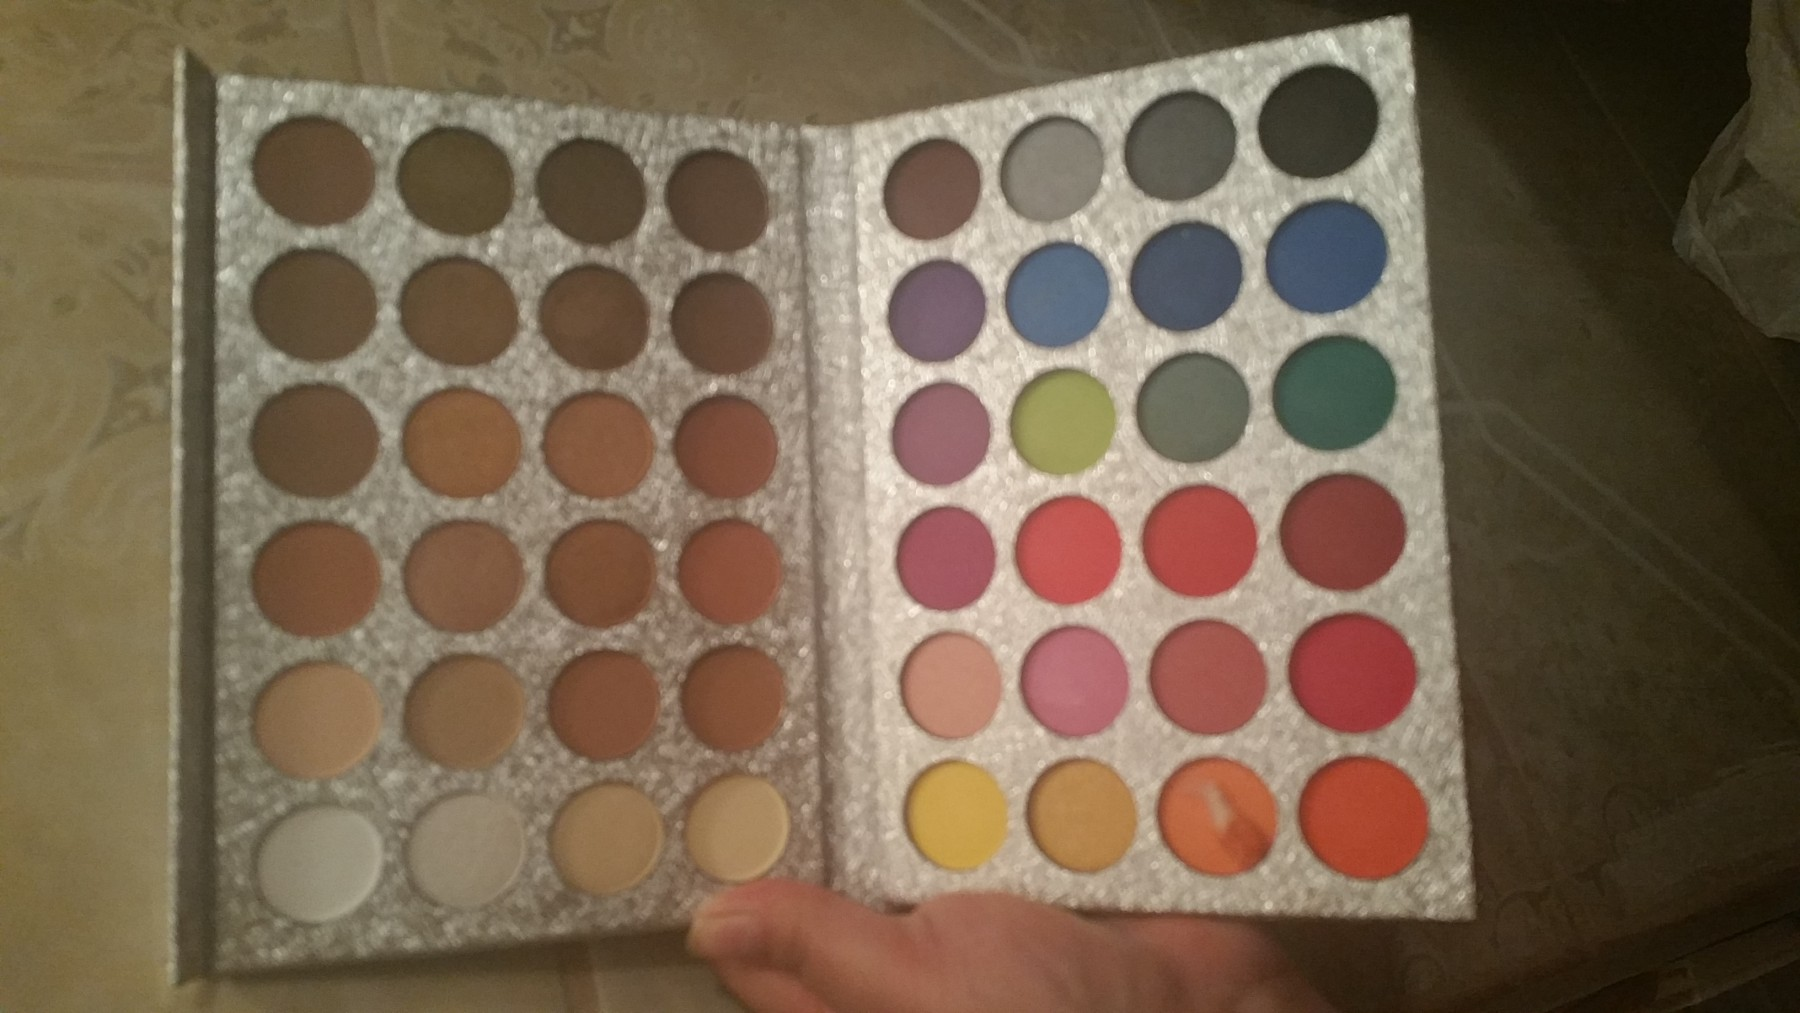 Beautiful eyeshadow pallette